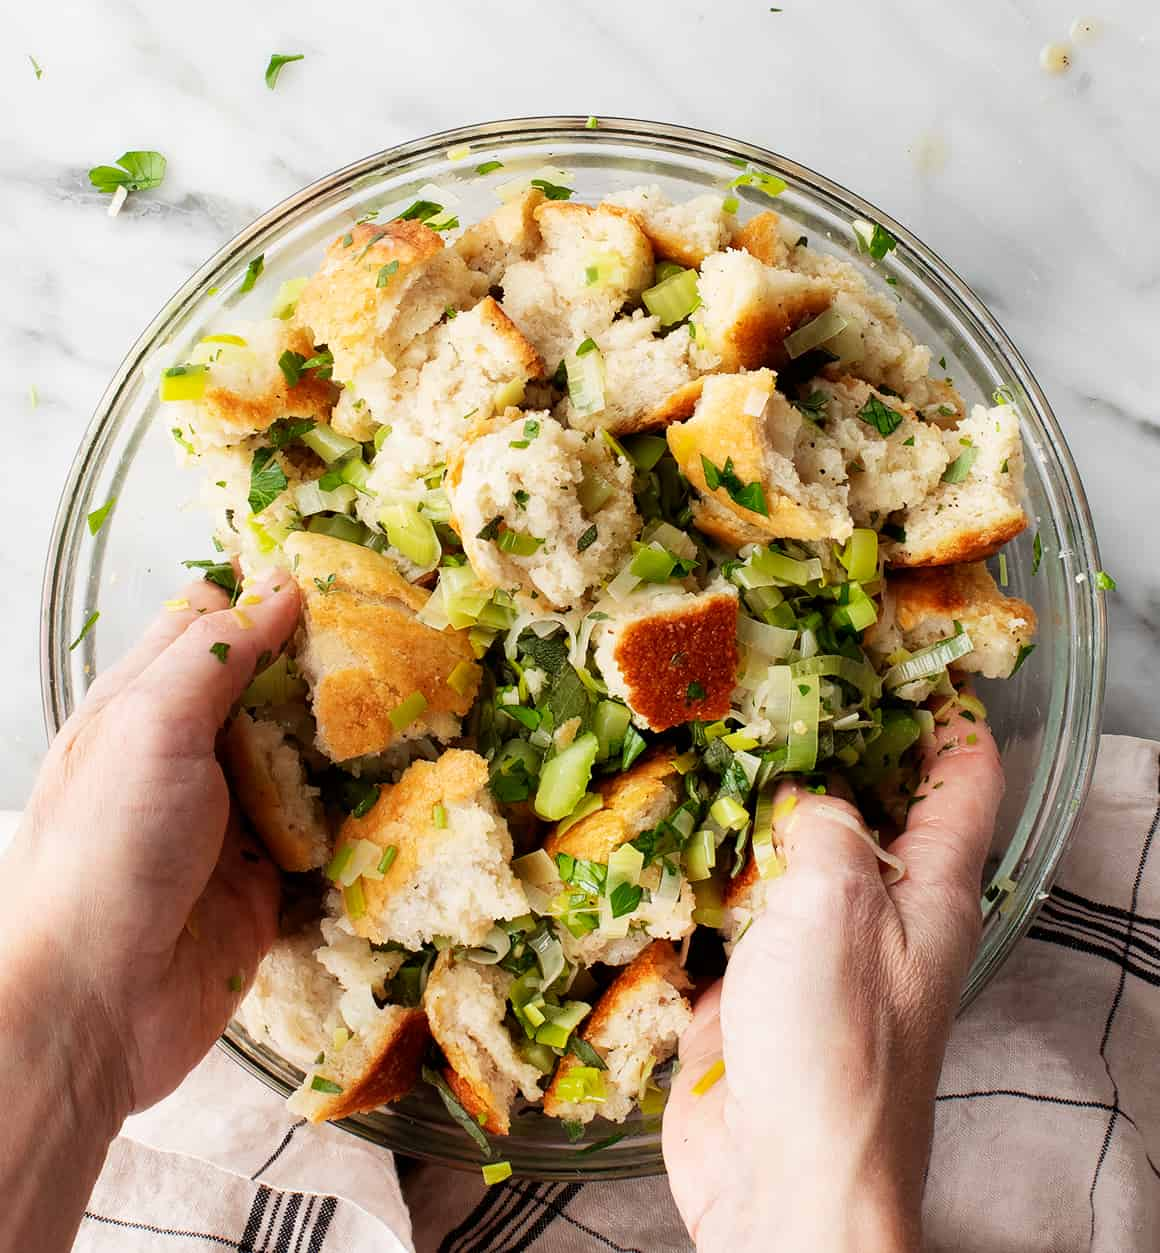 Hands mixing crusty bread with herbs, leeks, and celery